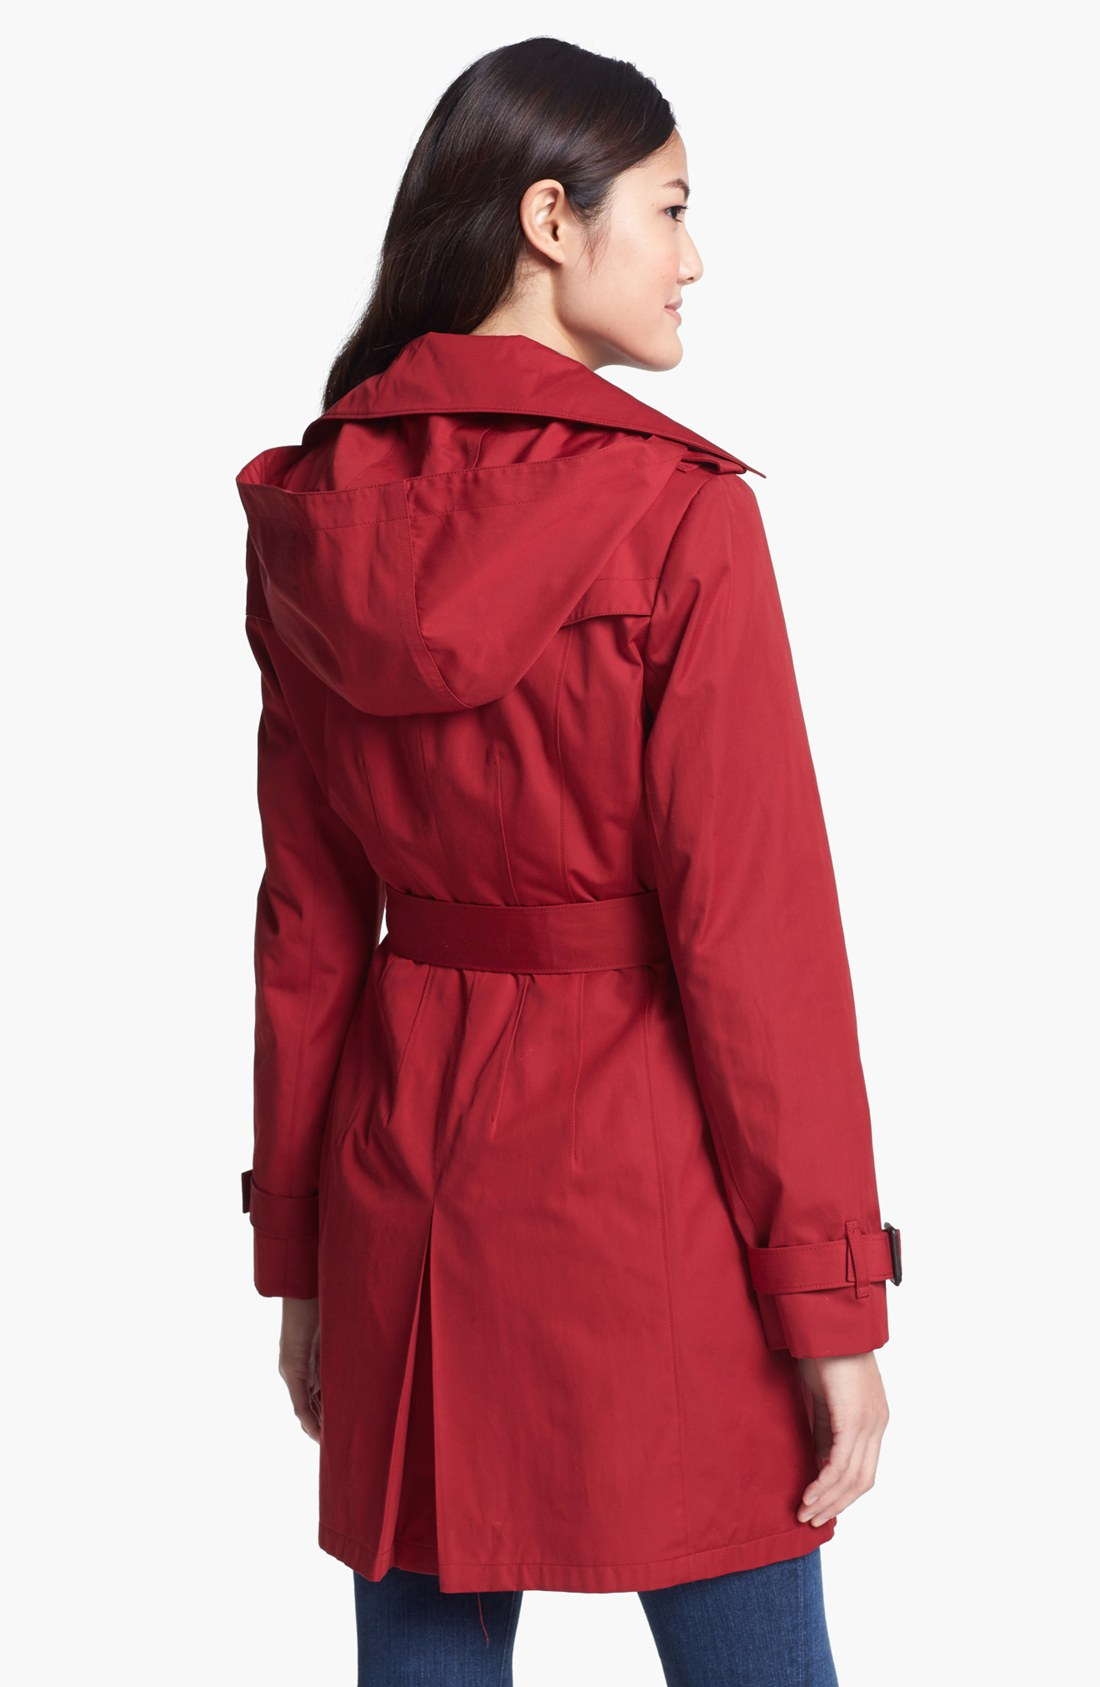 Images of Red Trench Coat With Hood - Watch Out, There's a Clothes ...